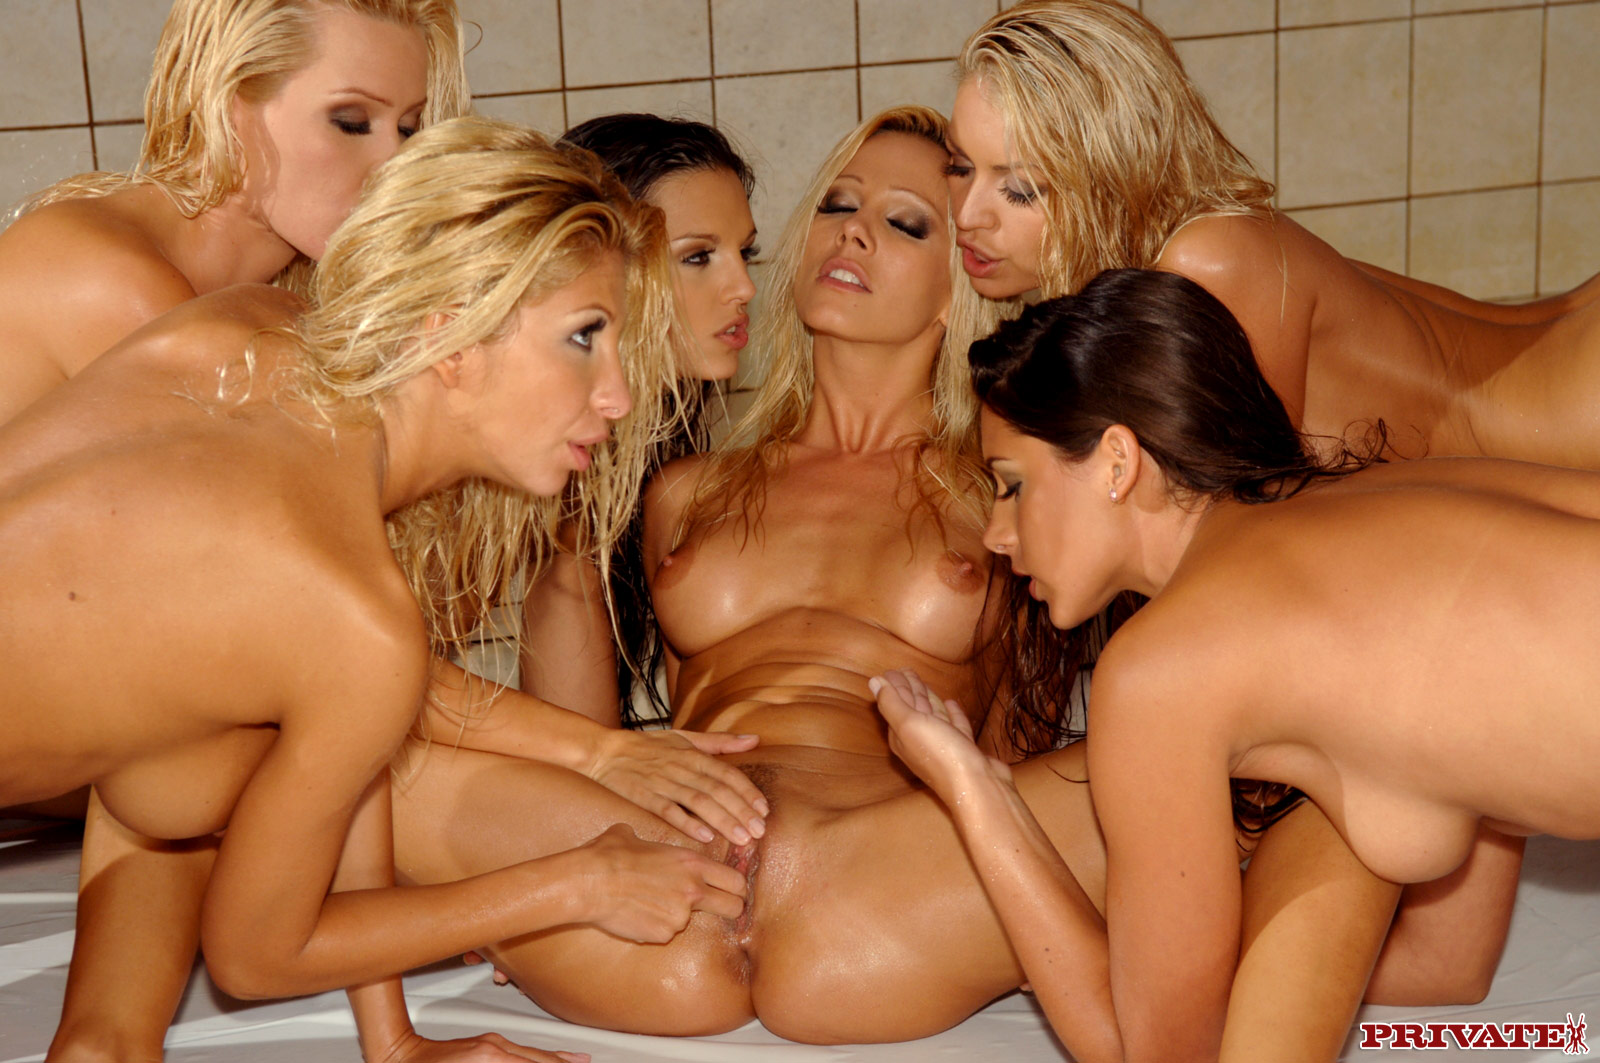 Showergirls